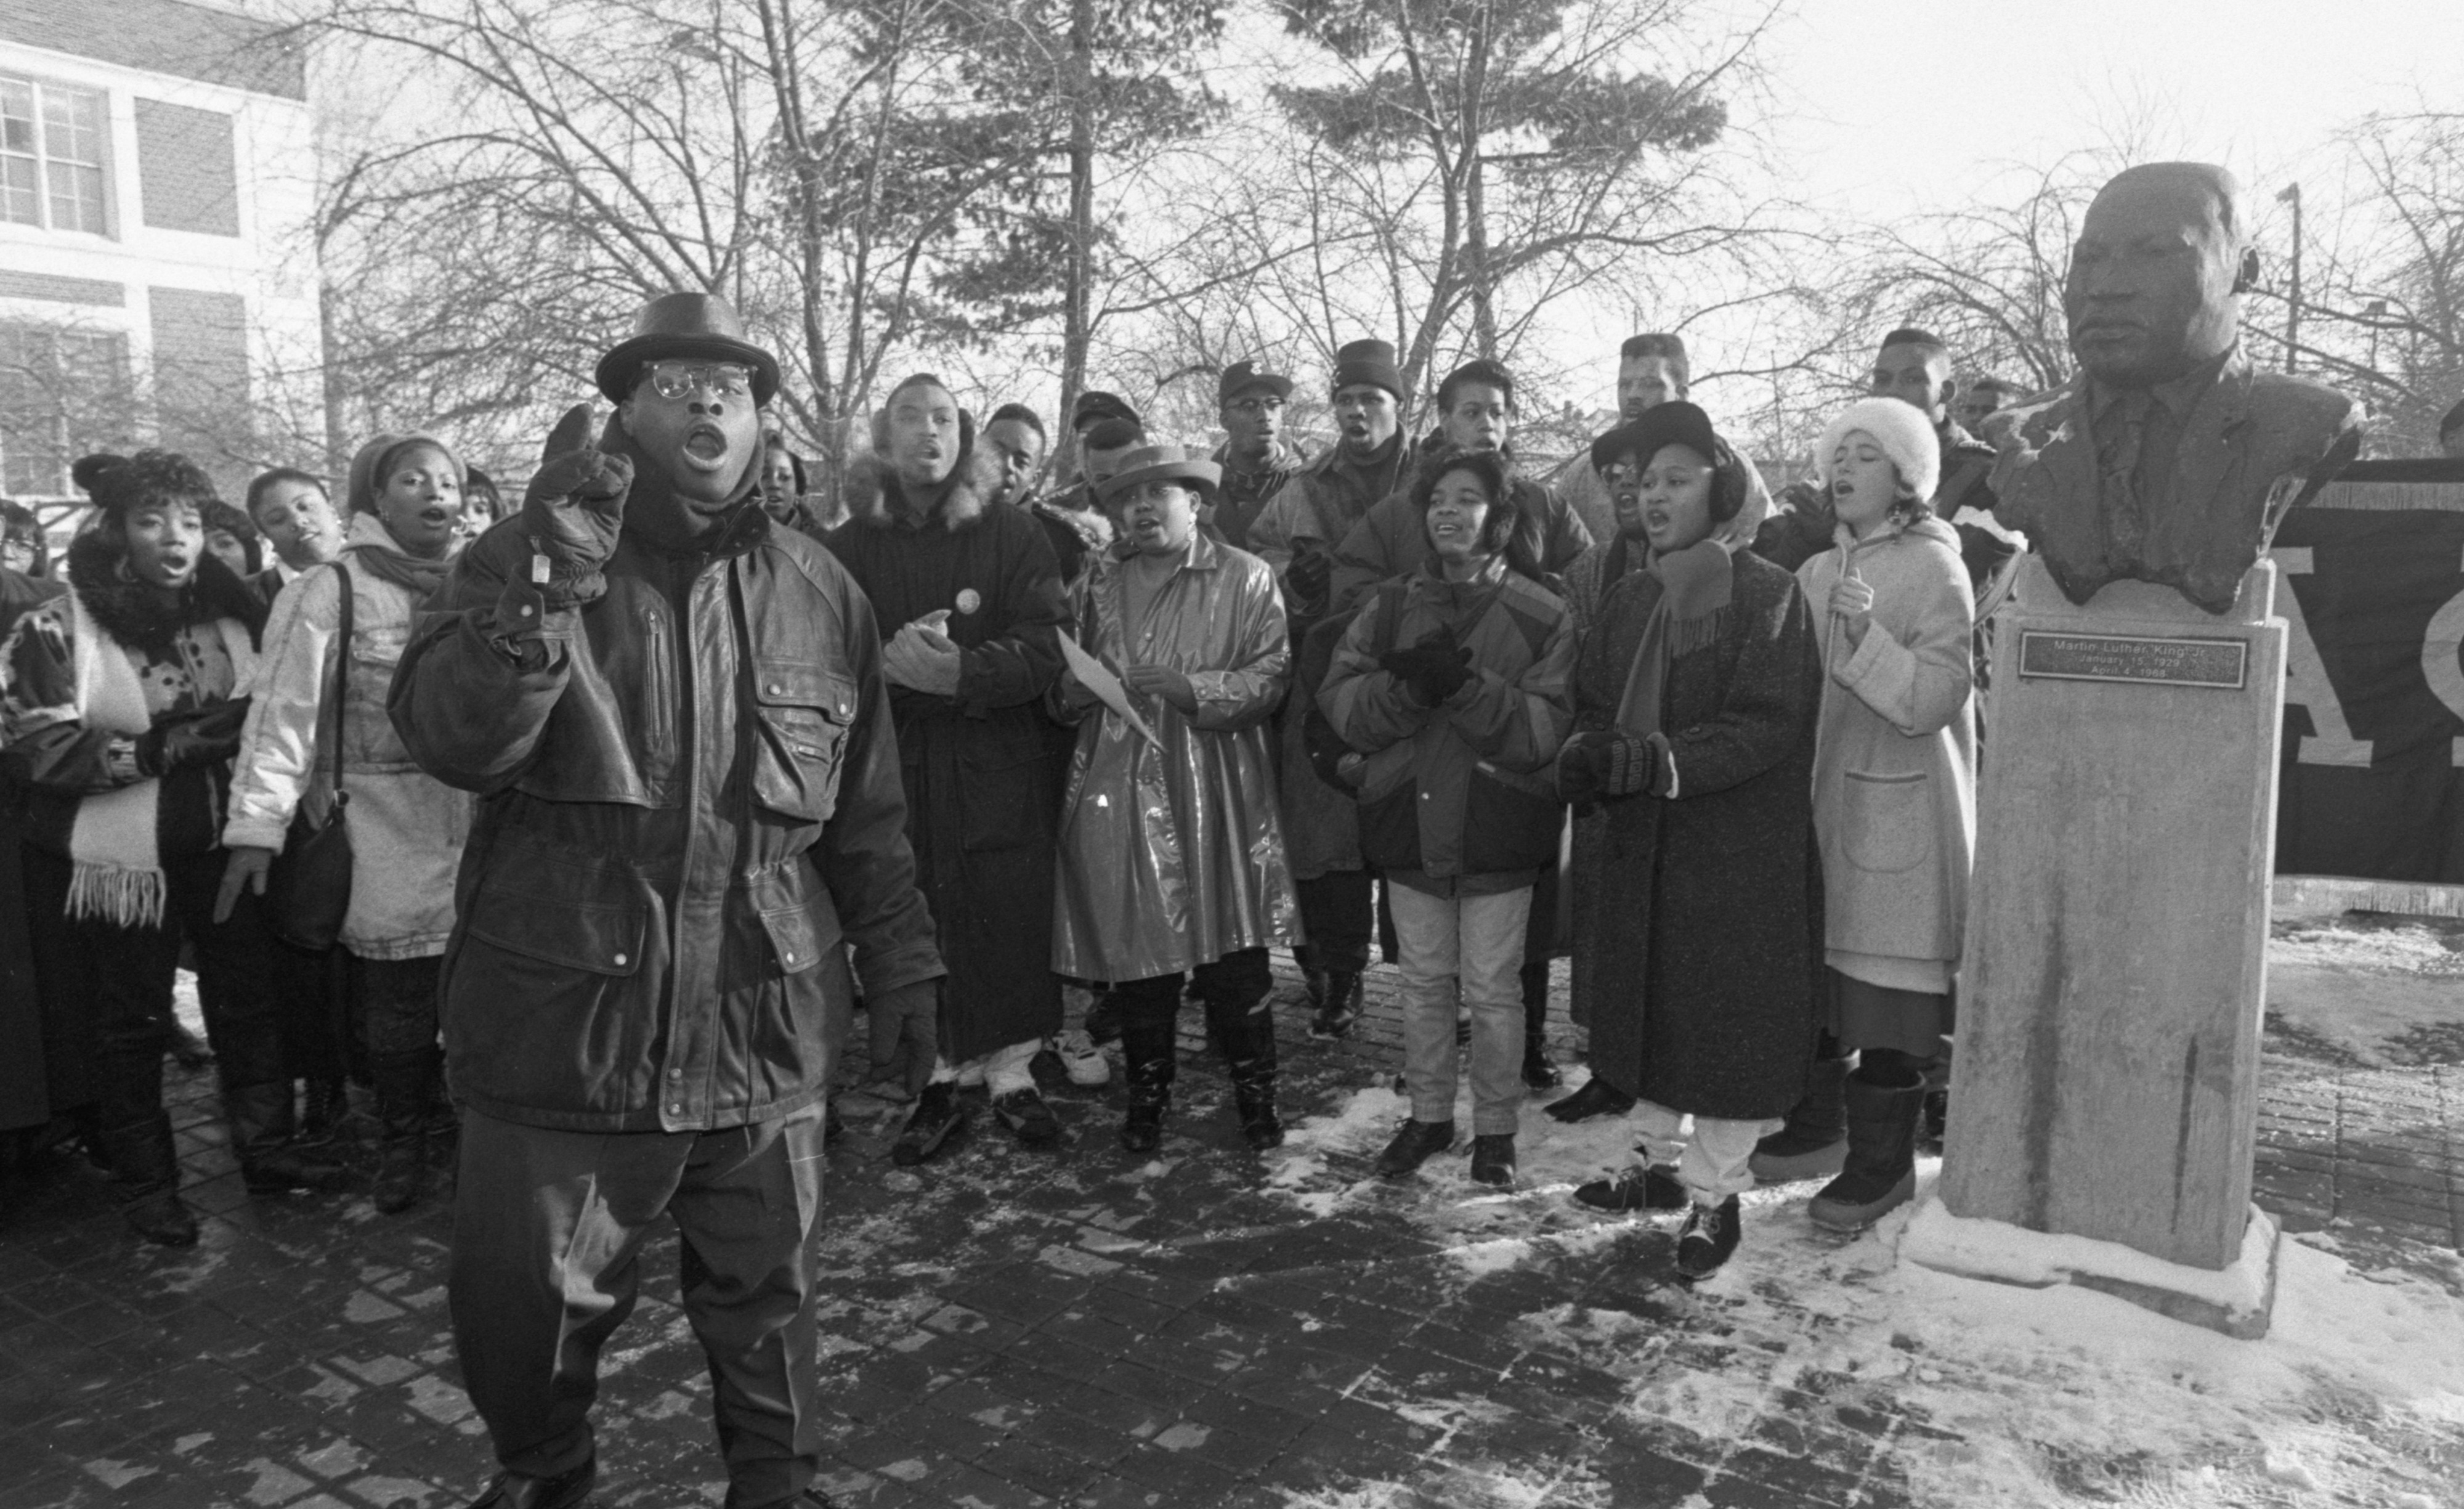 Melvin Miller Leads The EMU Gospel Choir In Song At A Martin Luther King Jr. Memorial Ceremony - January 20, 1992 image